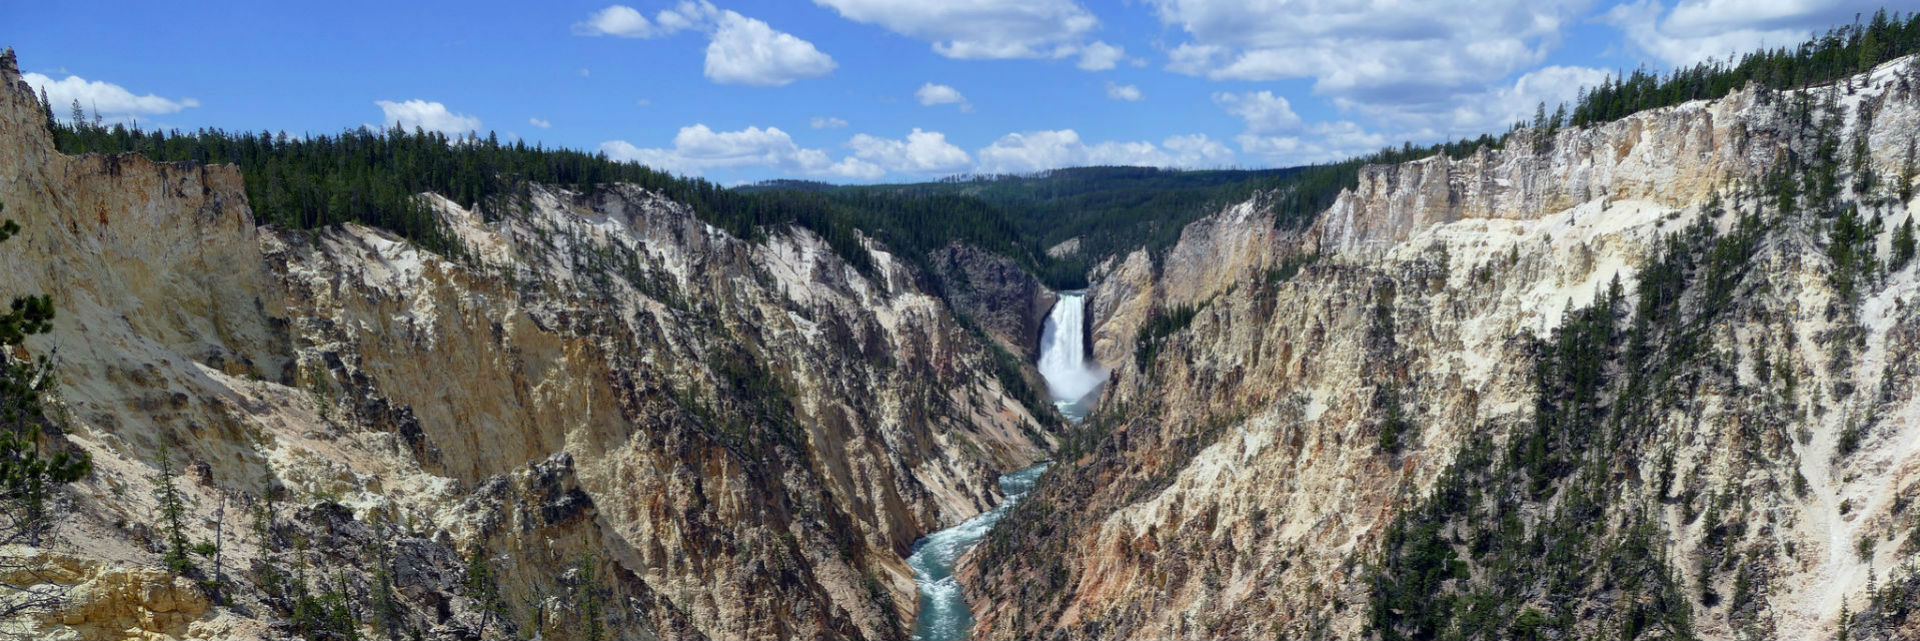 River flows over waterfall in canyon in a bright sunny day